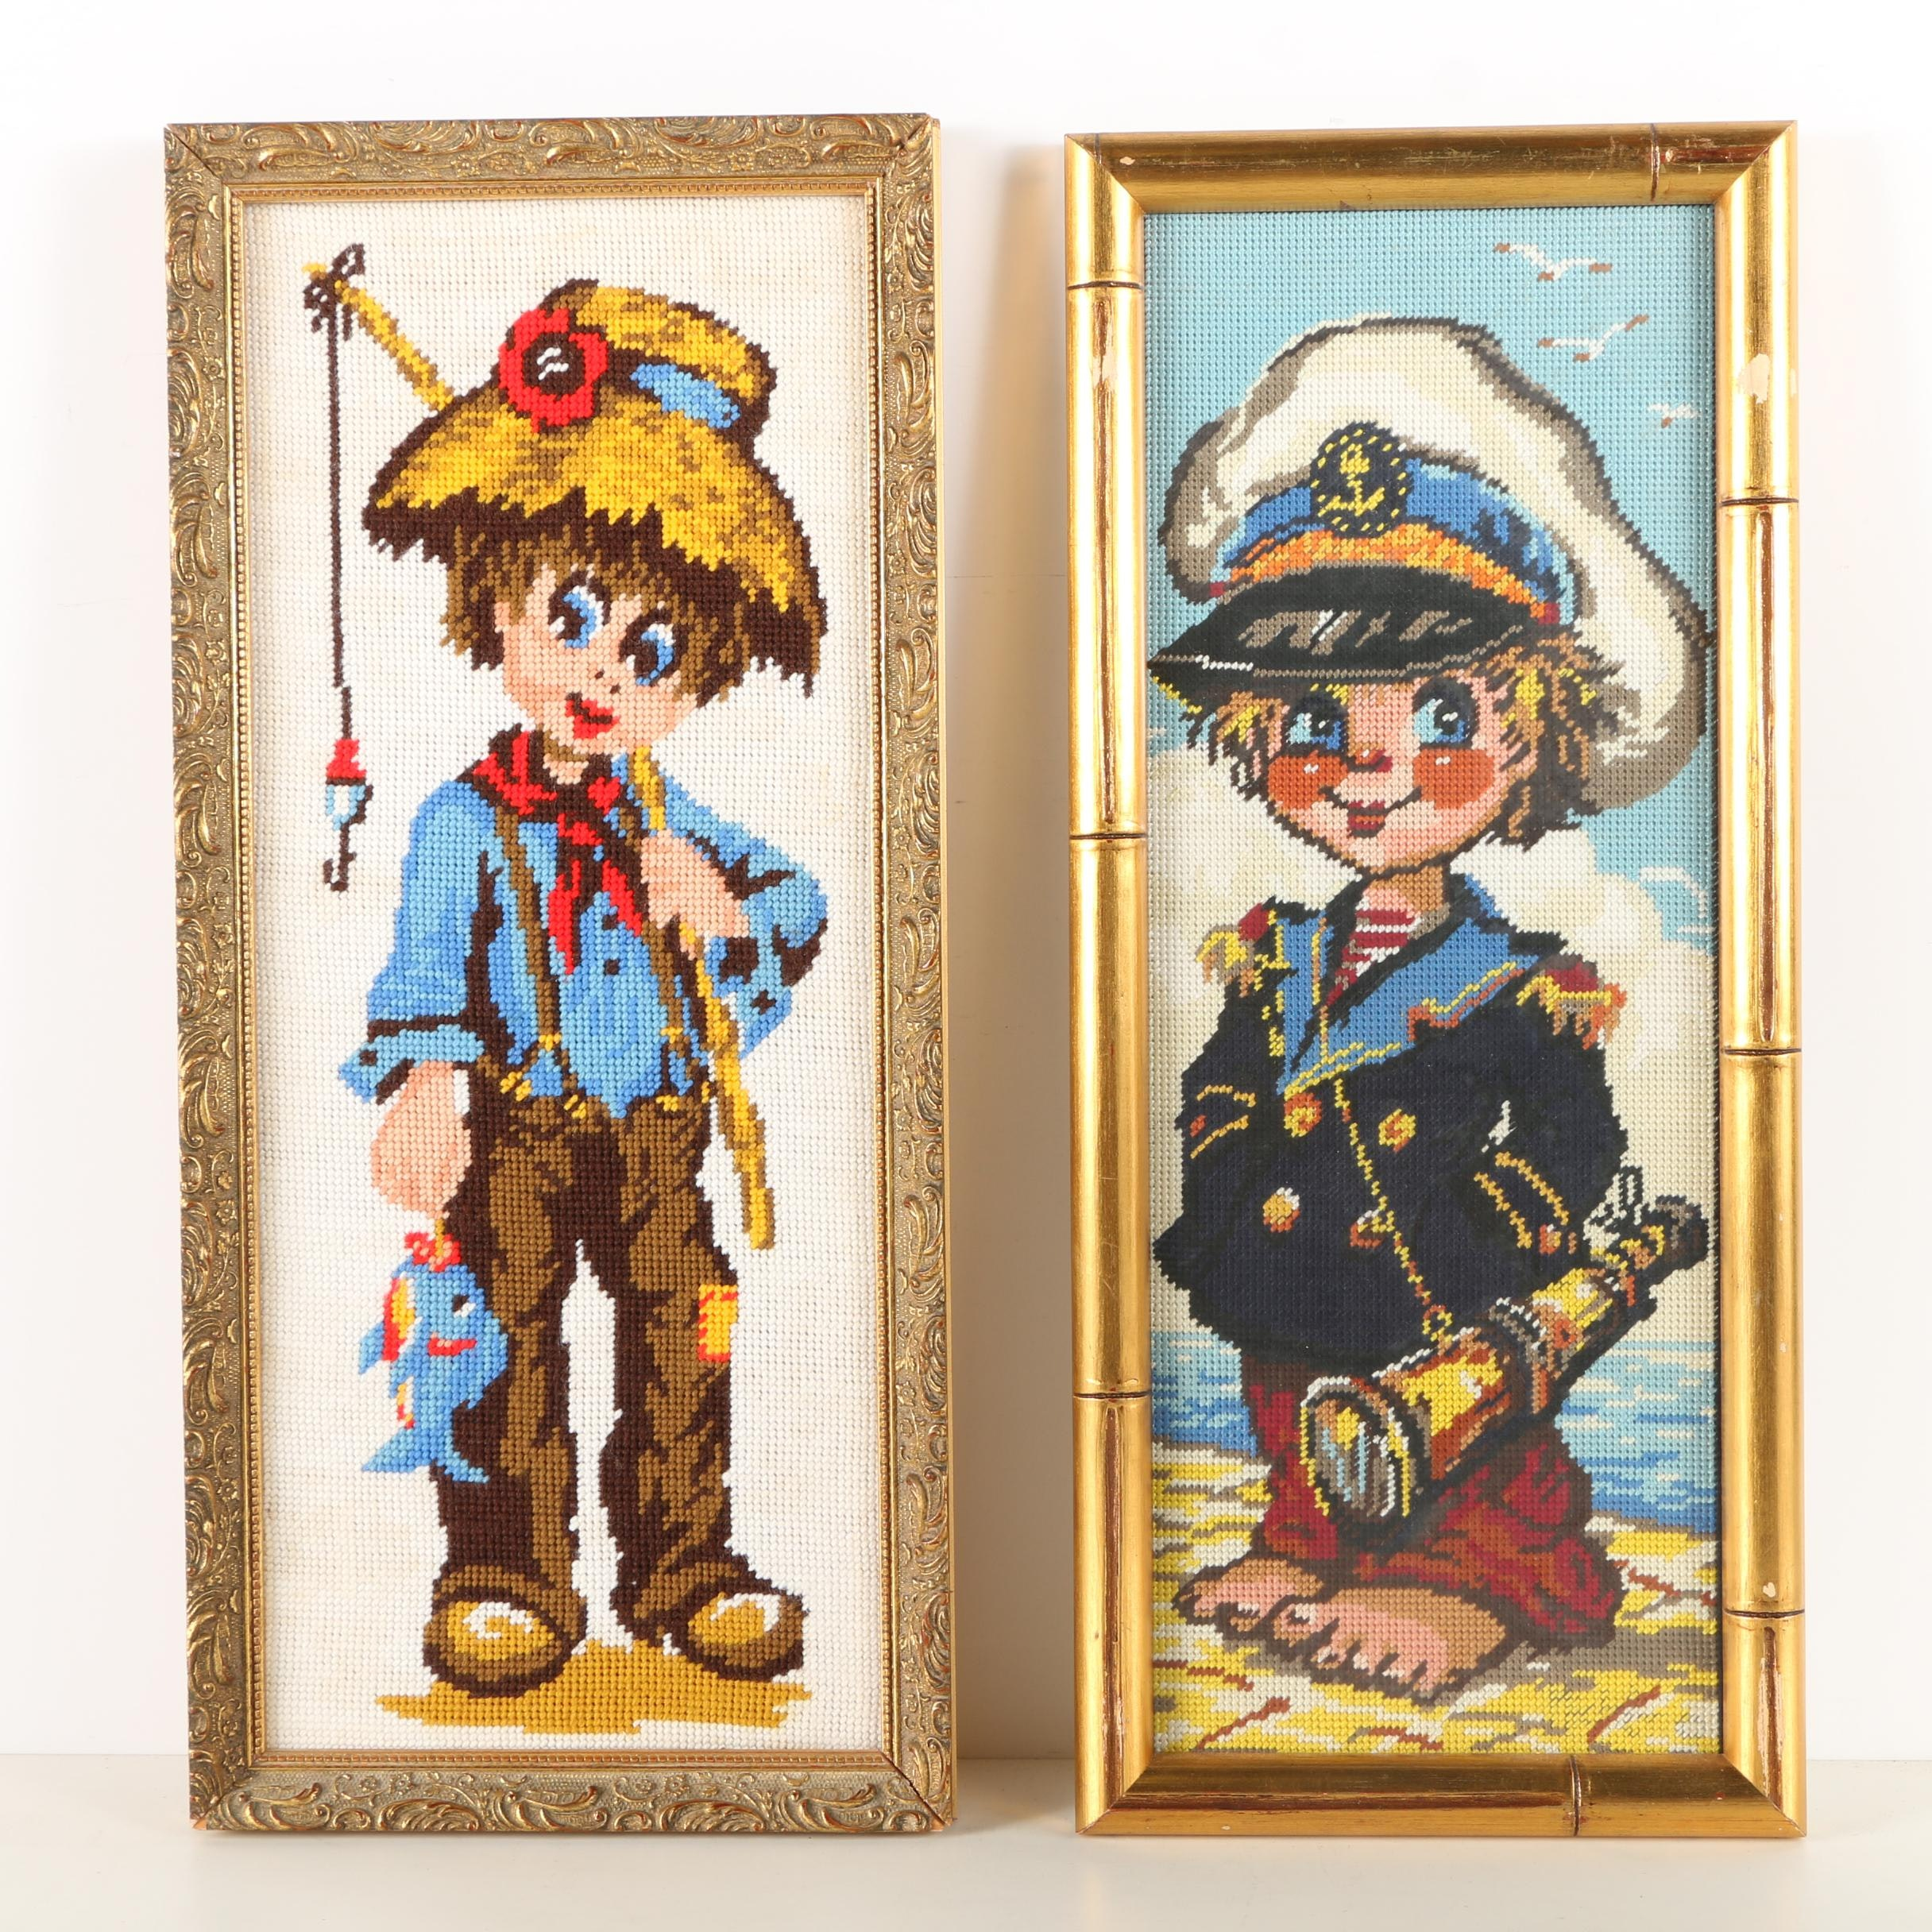 Framed Needlepoints of Two Young Boys